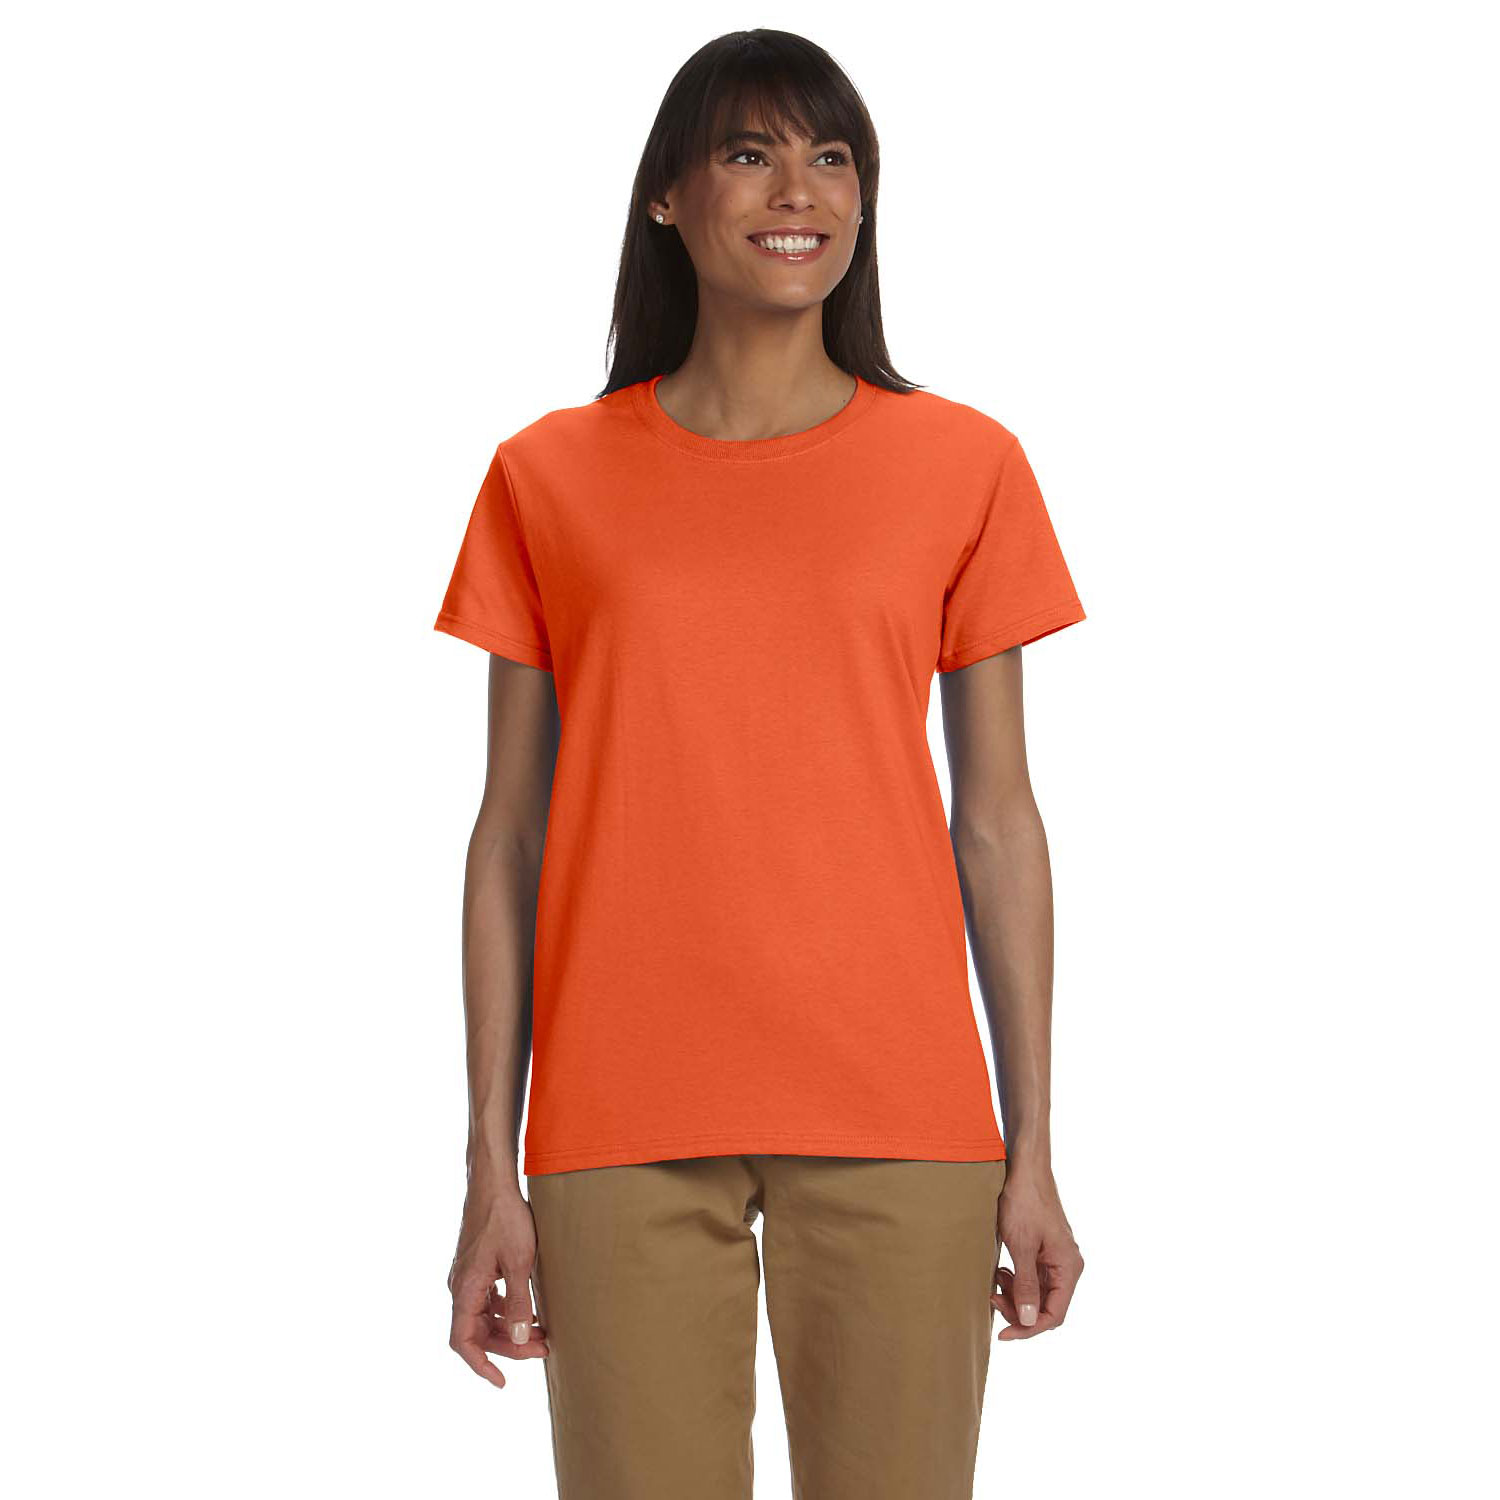 Gildan 200l 6 0 oz ultra cotton ladies t shirt 4c print shop for Gildan t shirts online